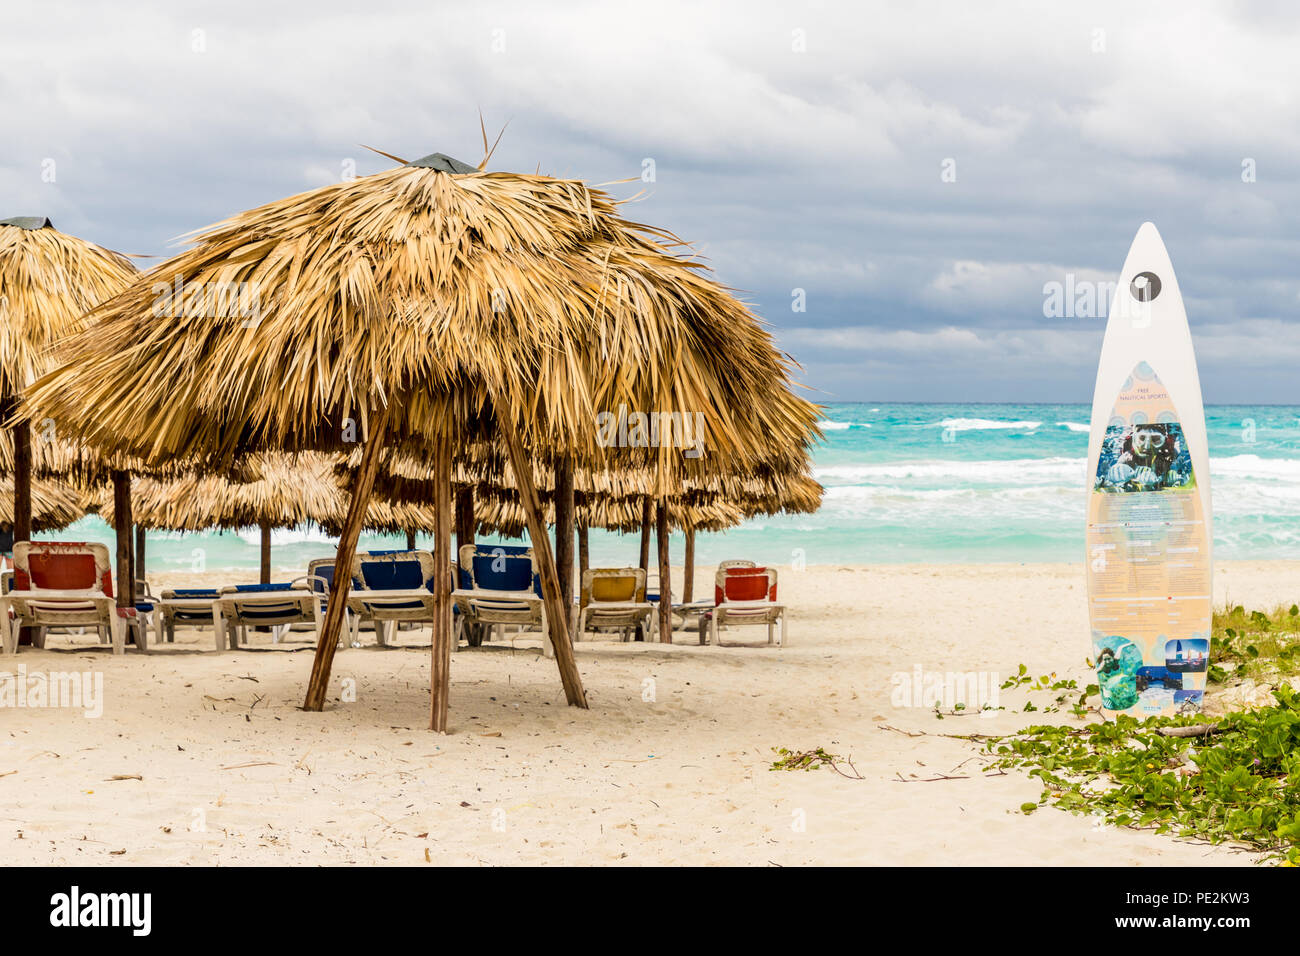 A typical view in Varadero in Cuba Stock Photo